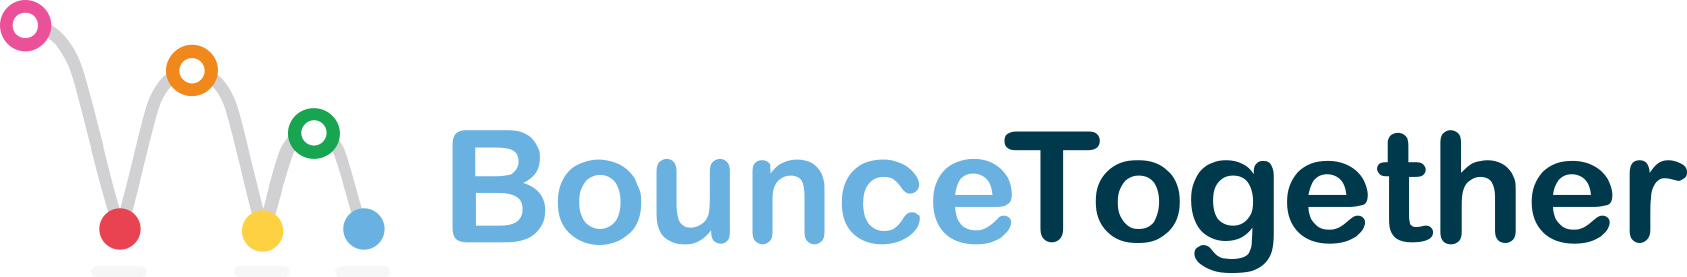 BounceTogether Blue logo